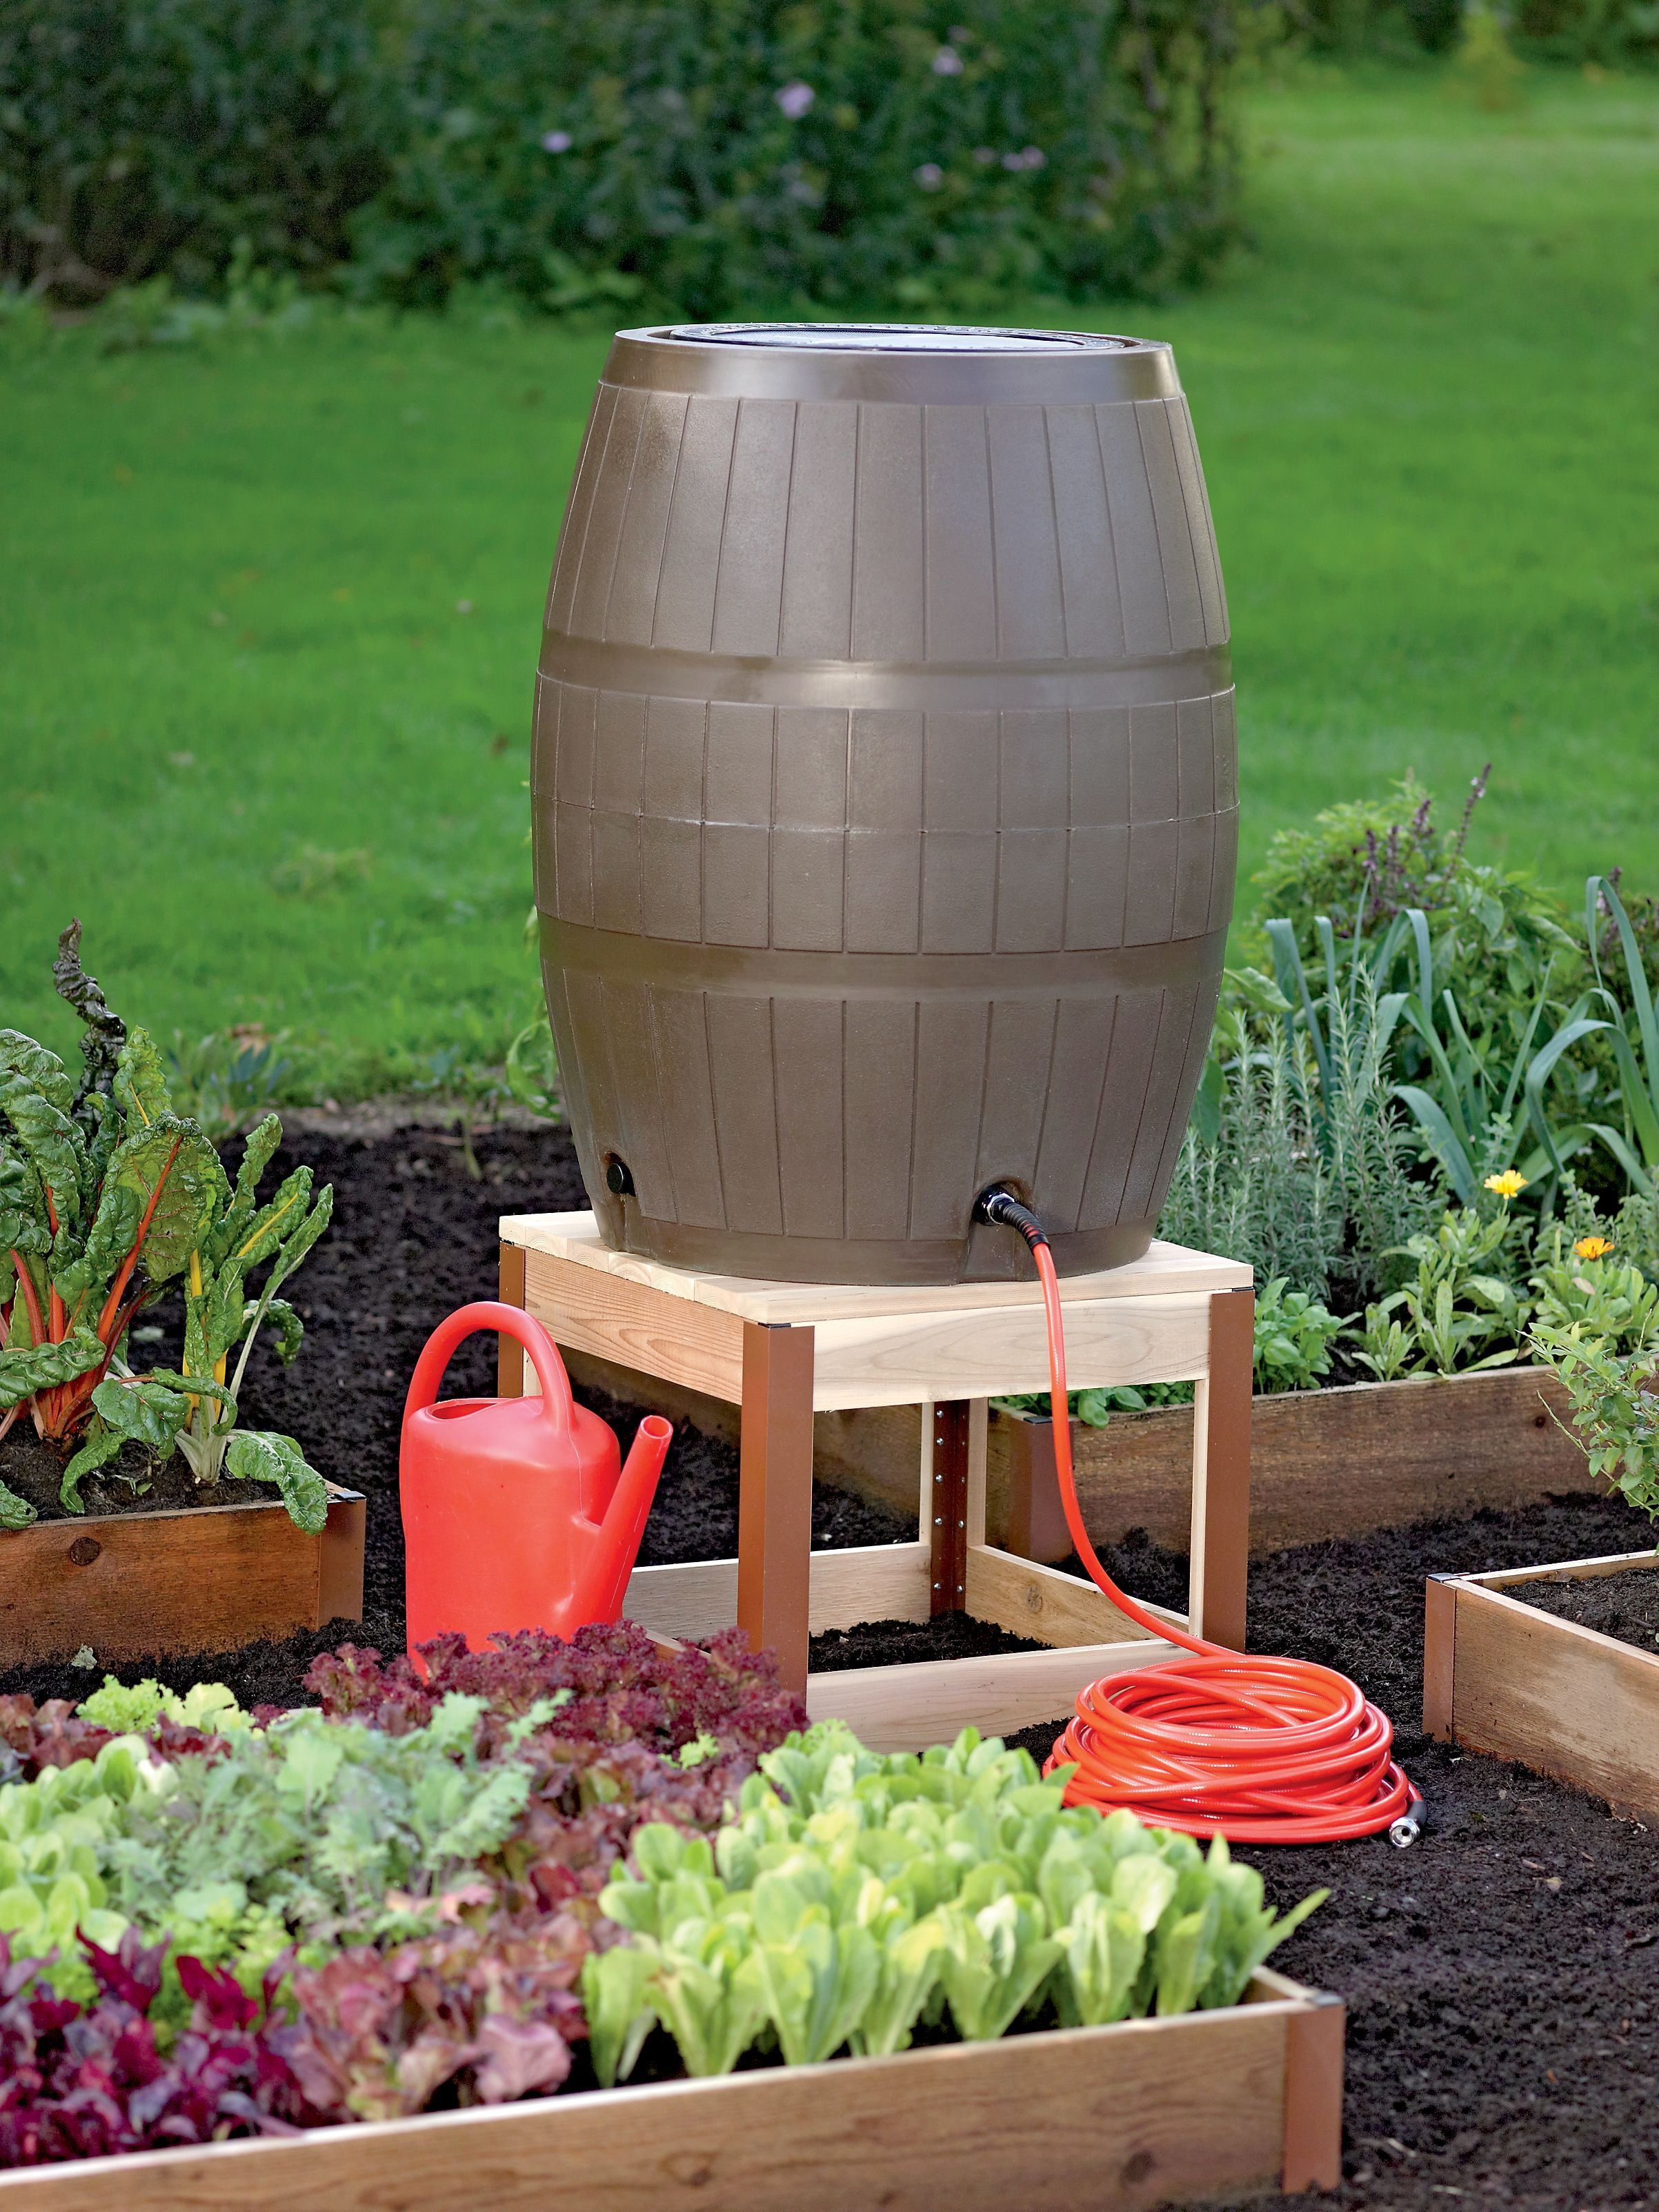 110 00 Sy Rain Barrel Stand Raises Your For Easier Access Increases Water Pressure Holds Up To 750 Pounds